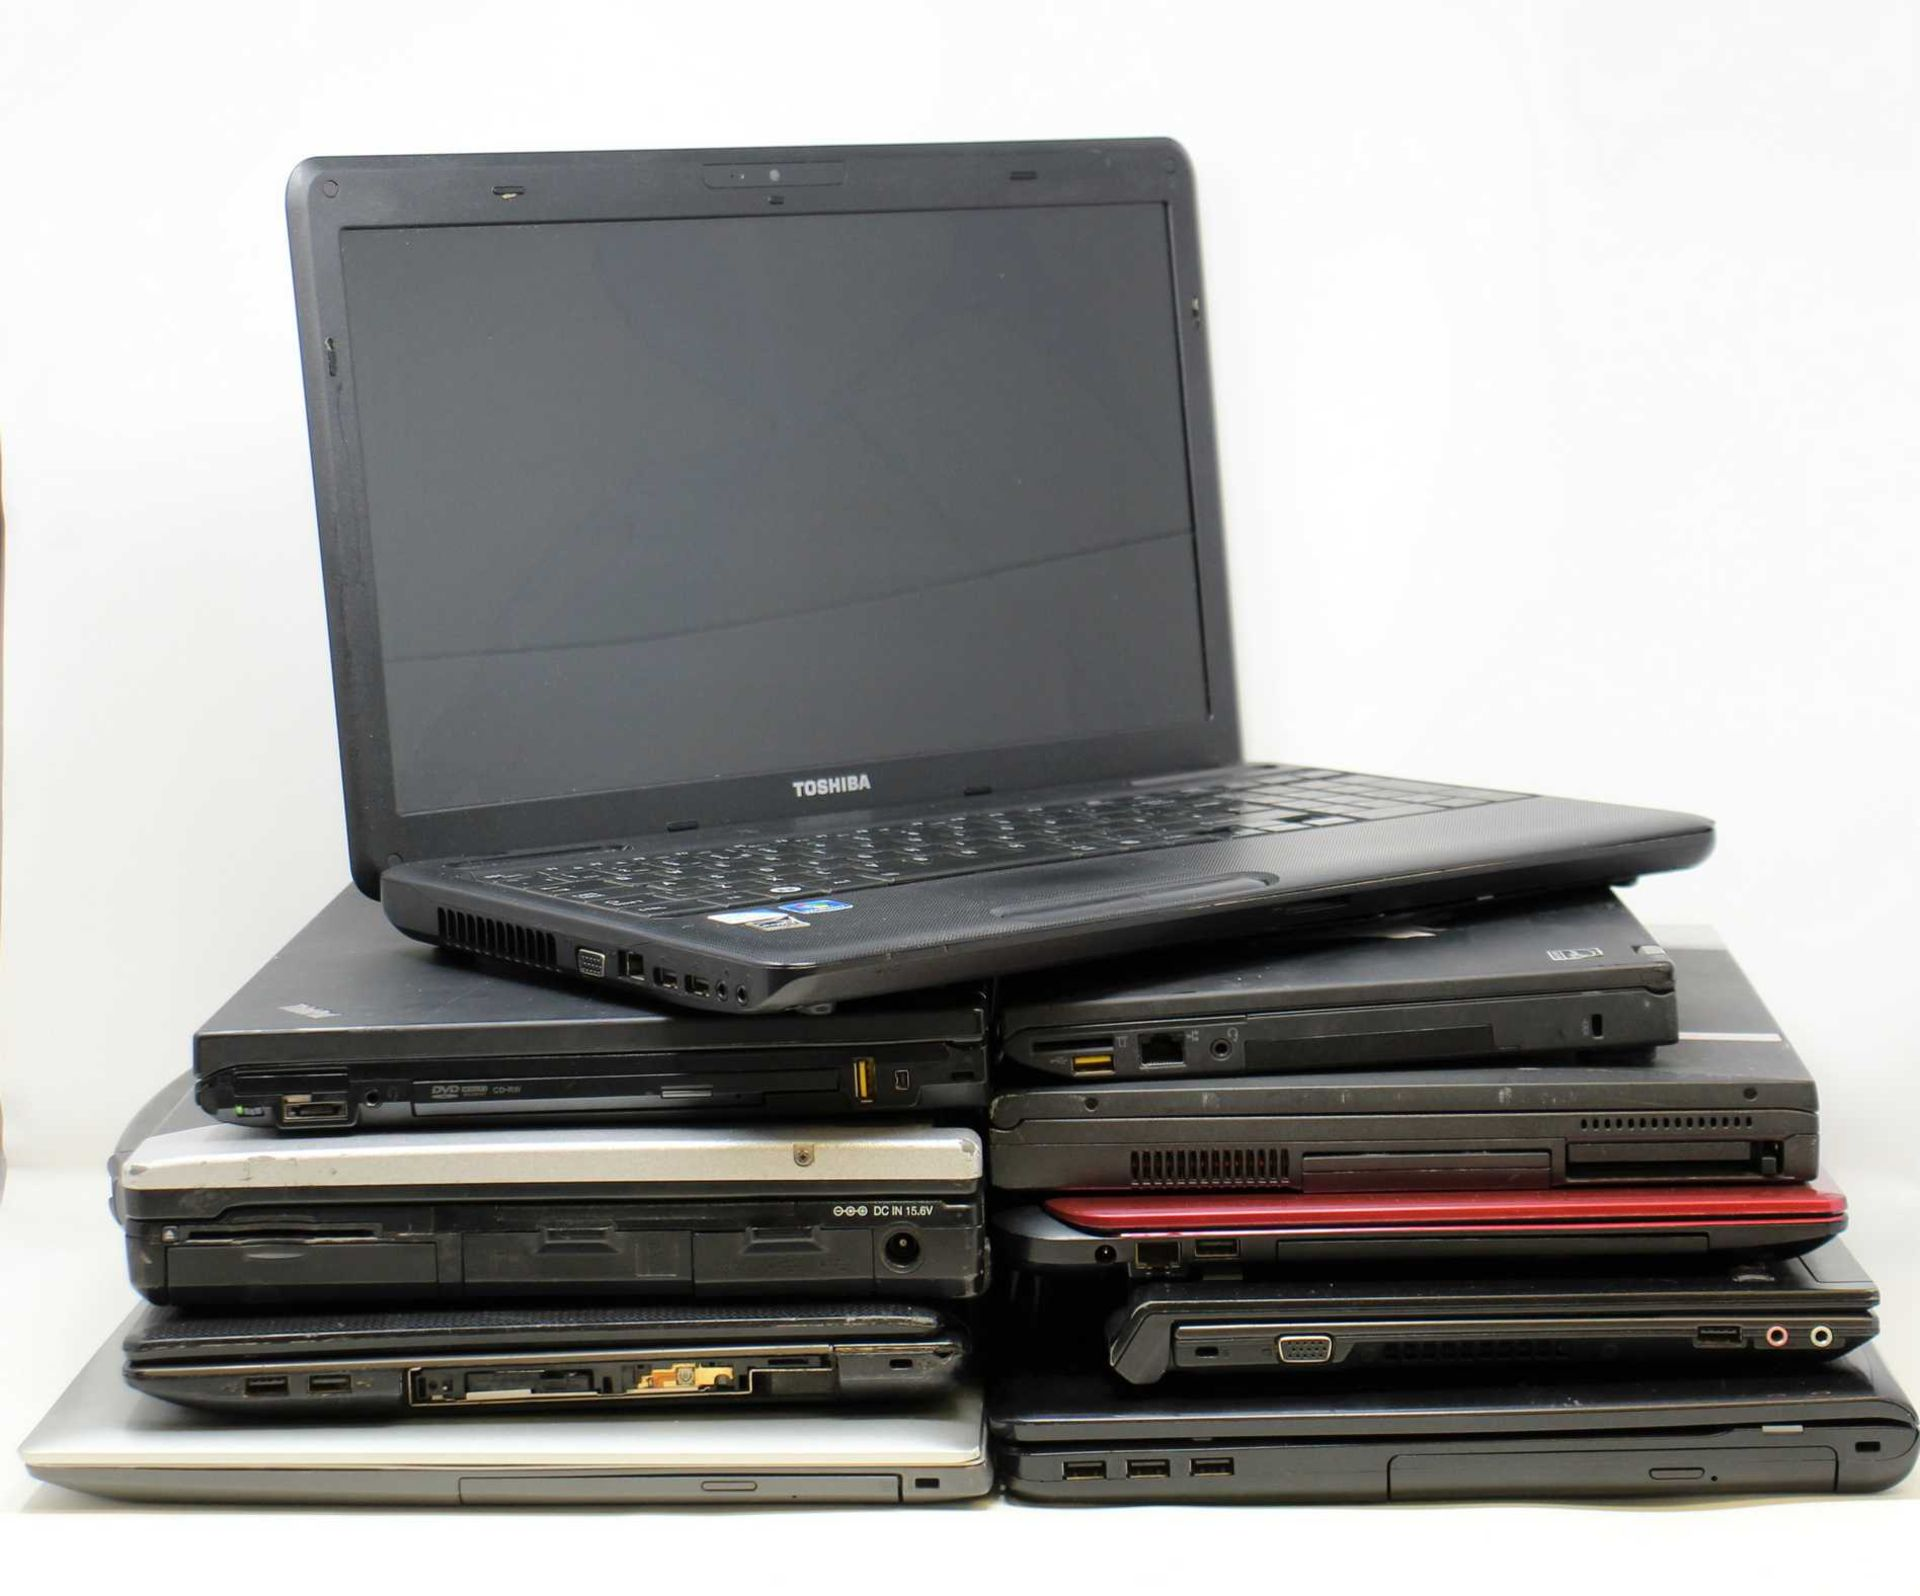 SOLD FOR PARTS, COLLECTION ONLY: Ten pre-owned Laptops sold for parts; 1 x Lenovo ThinkPad T410 (